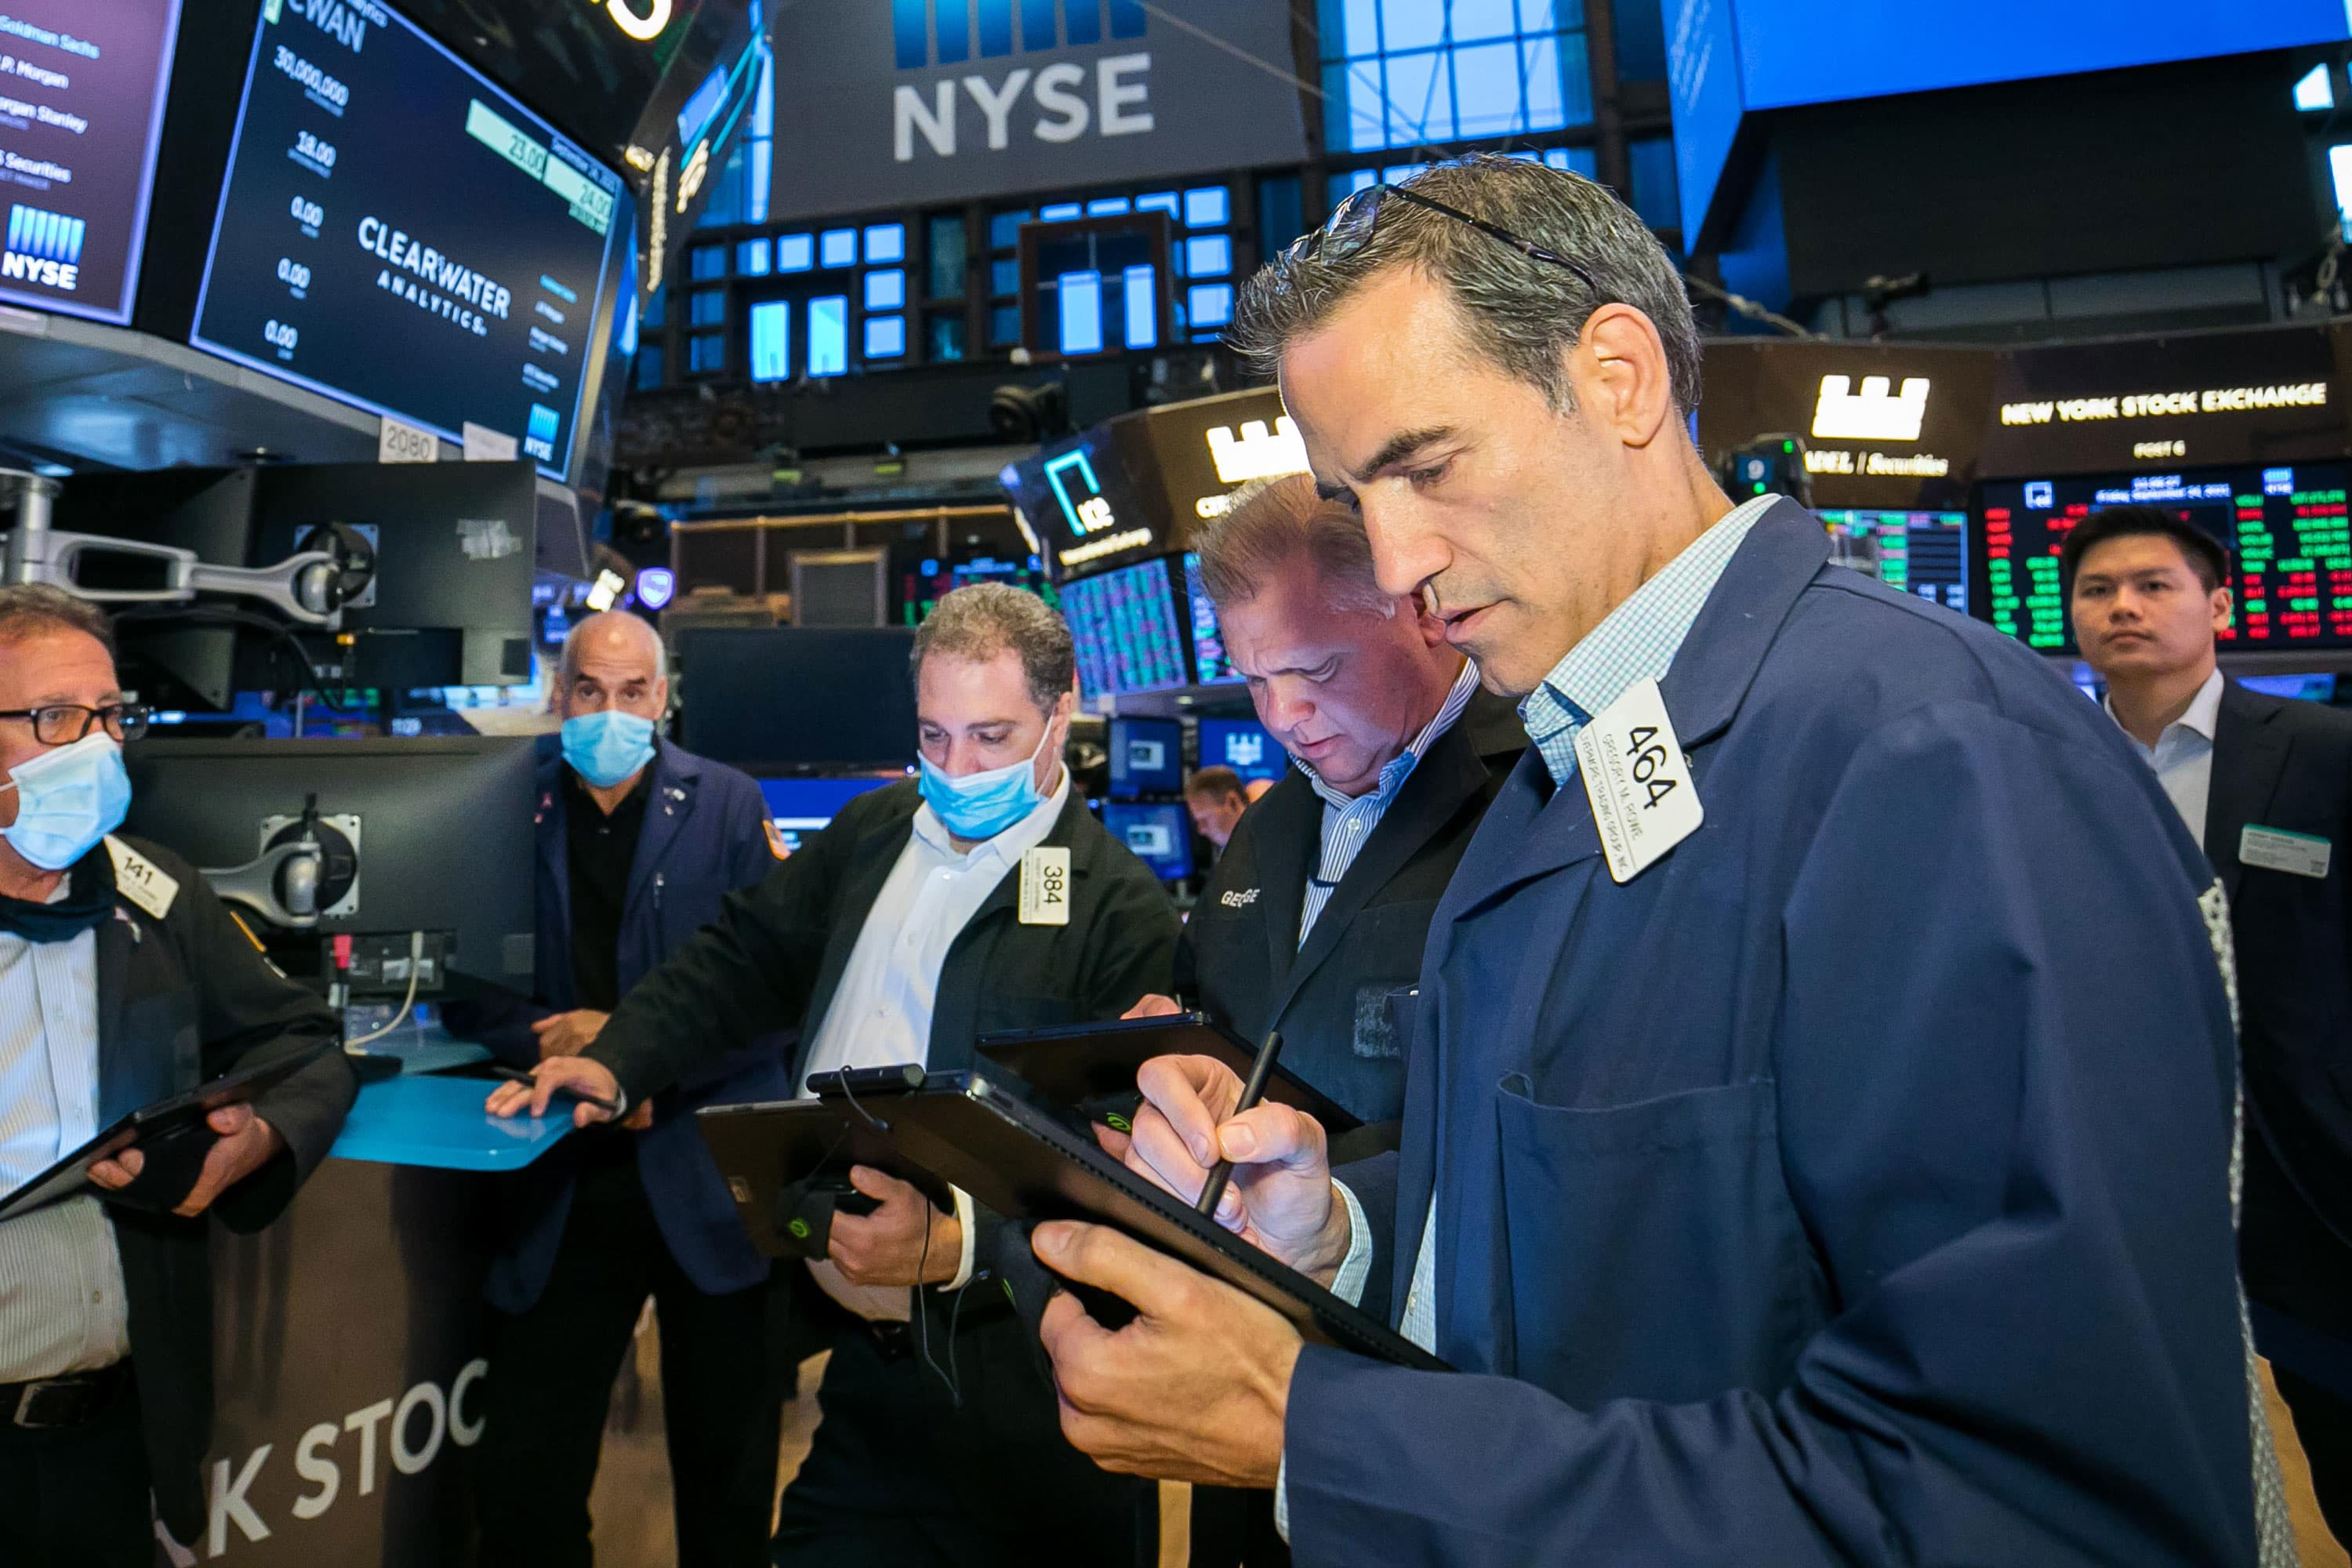 Four 'contrarian' trades that could withstand the market's wild swings